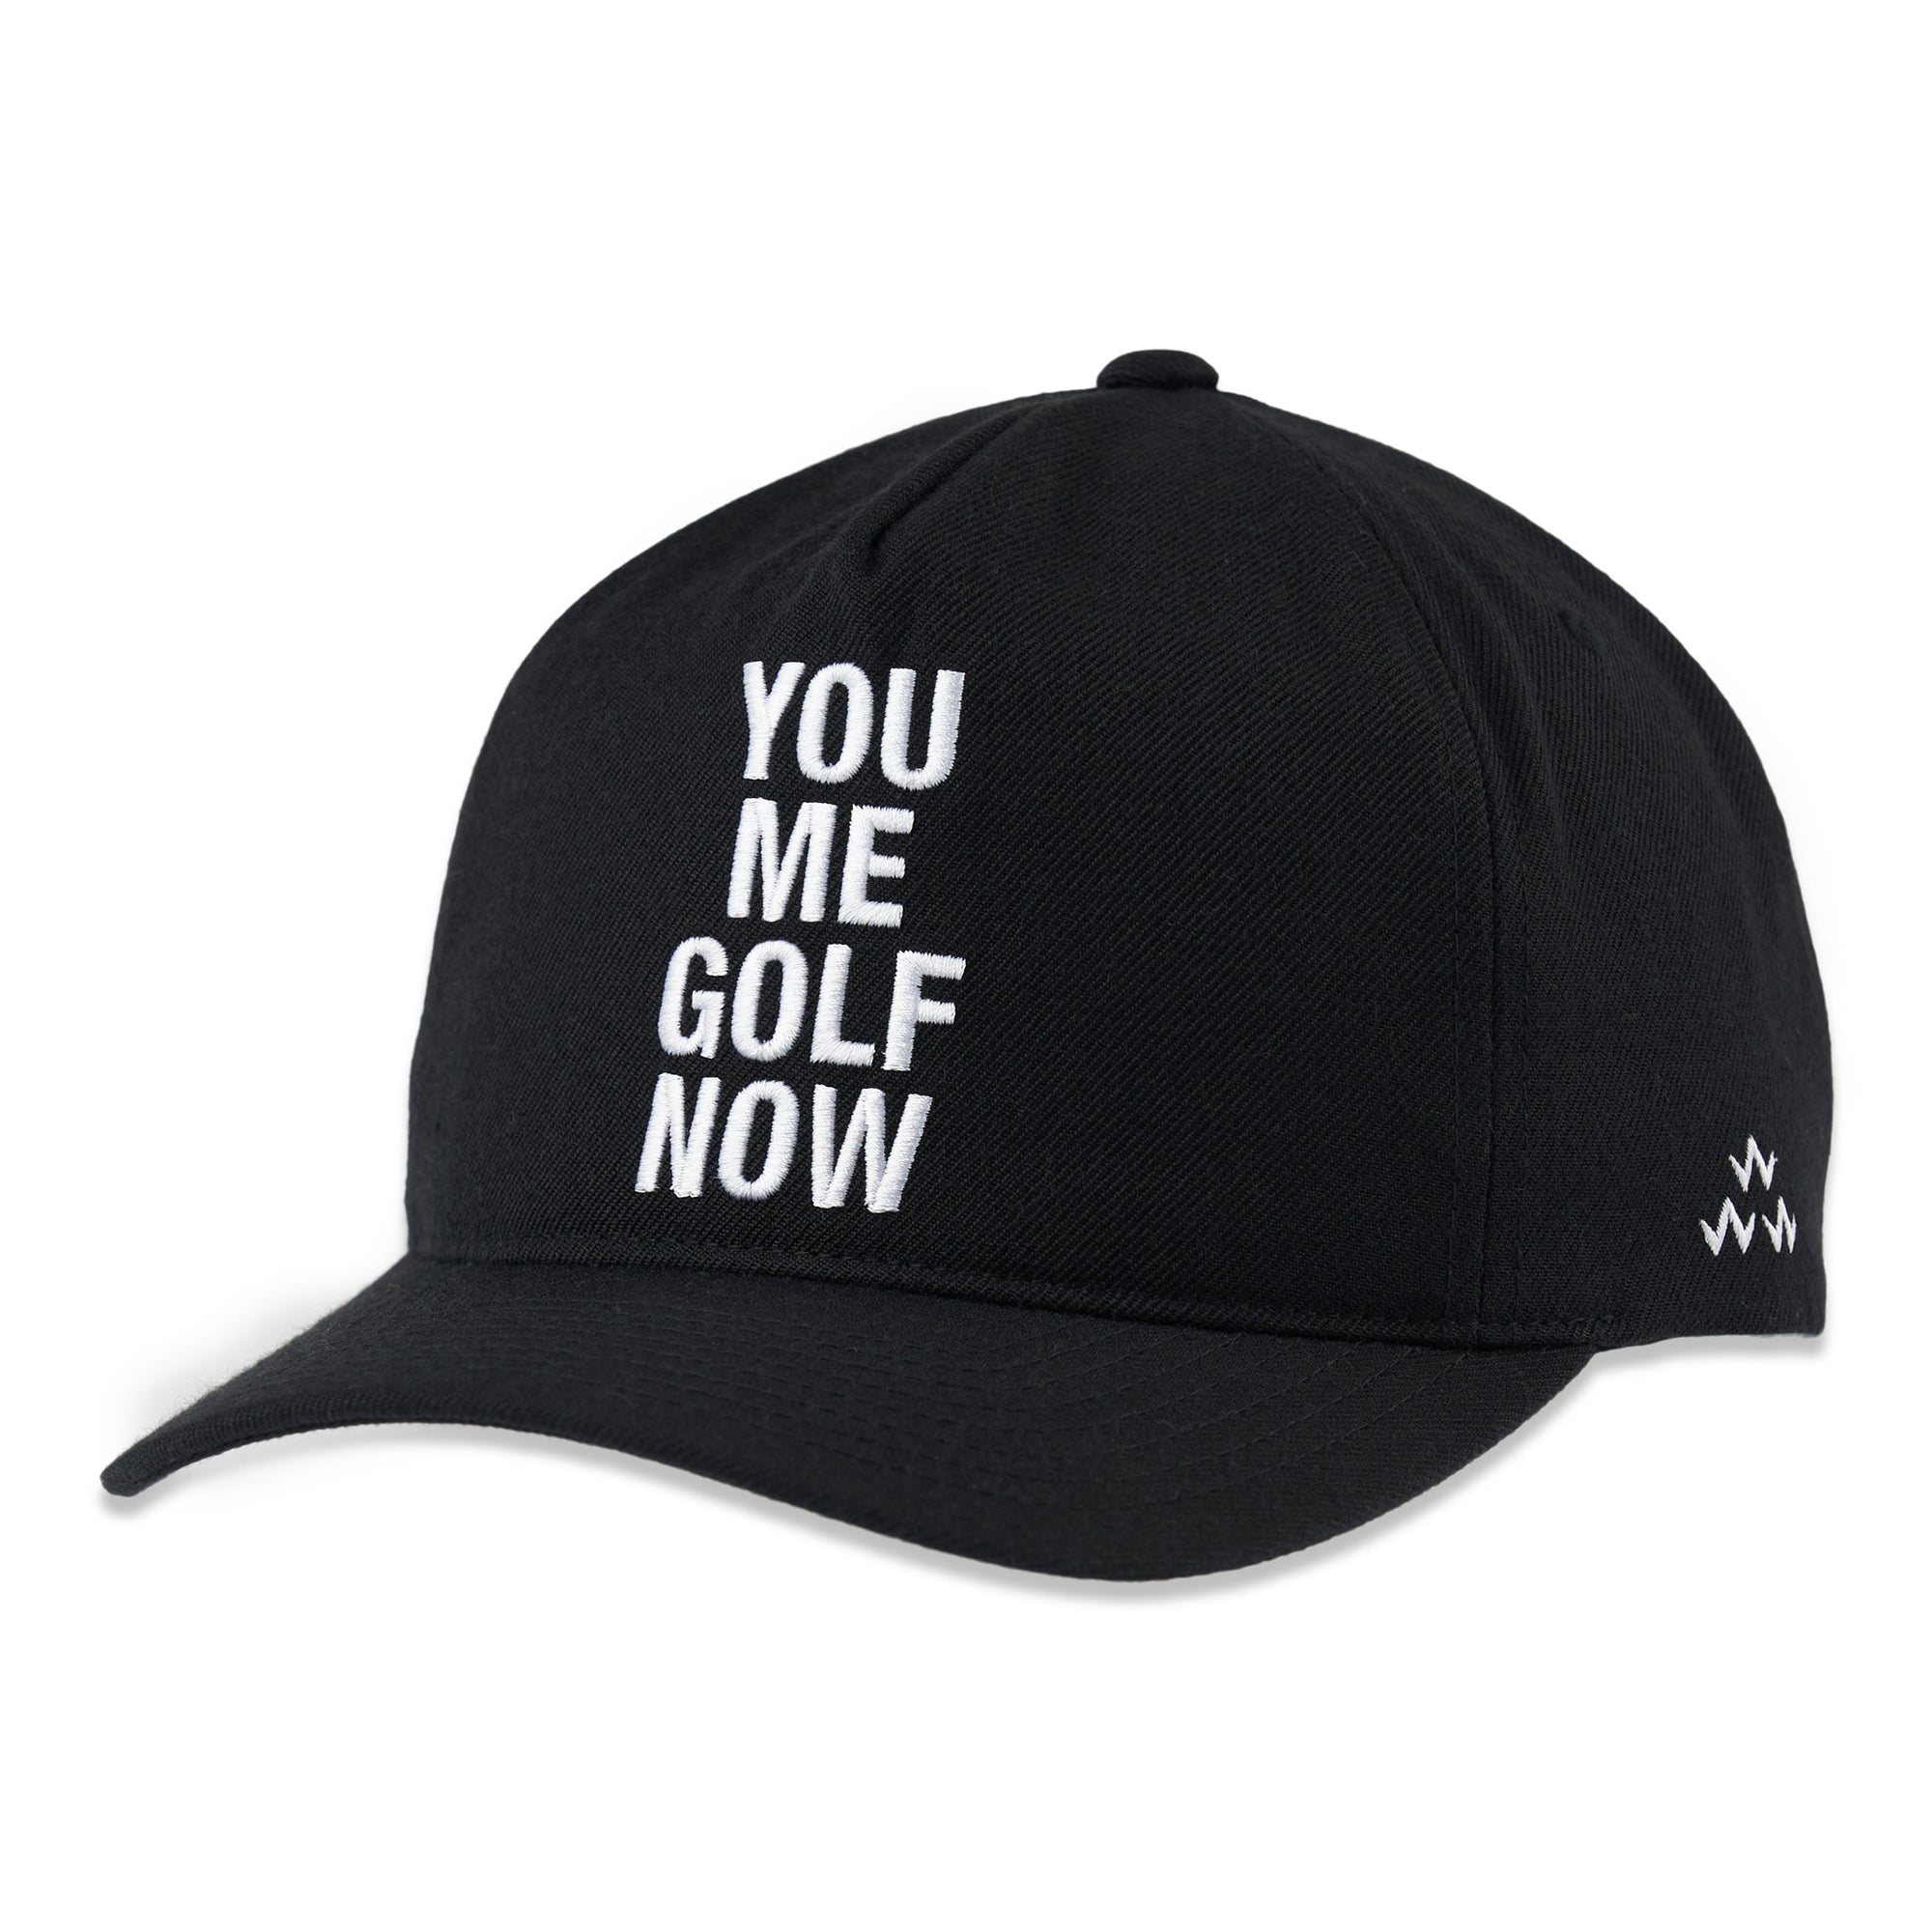 birds-of-condor-black-you-me-golf-now-snapback-hat-cap-front